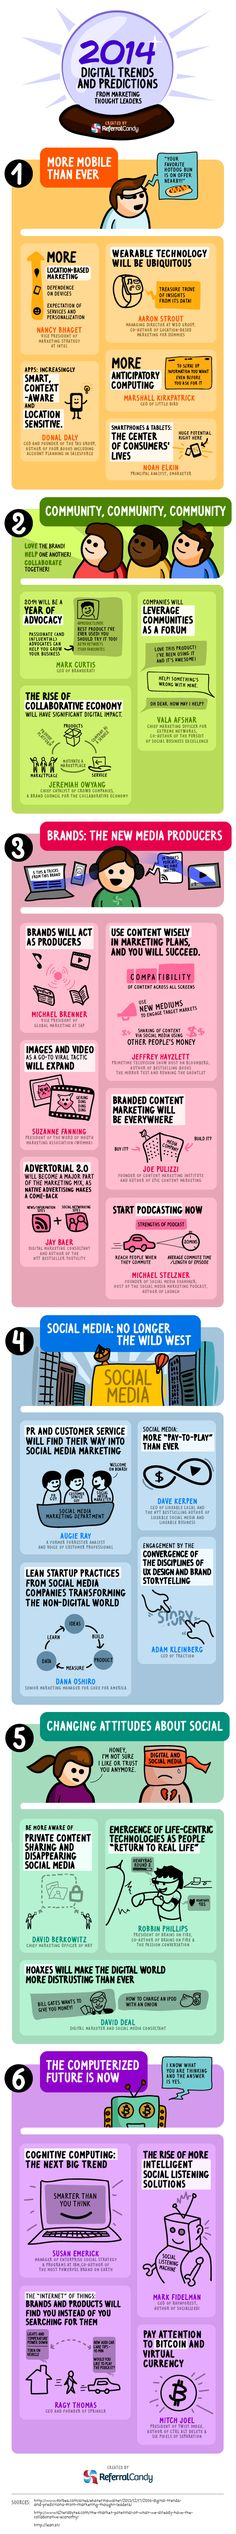 2014 Digital Trends And Predictions From Marketing Thought Leaders   #Infographic #Marketing #DigitalTrends